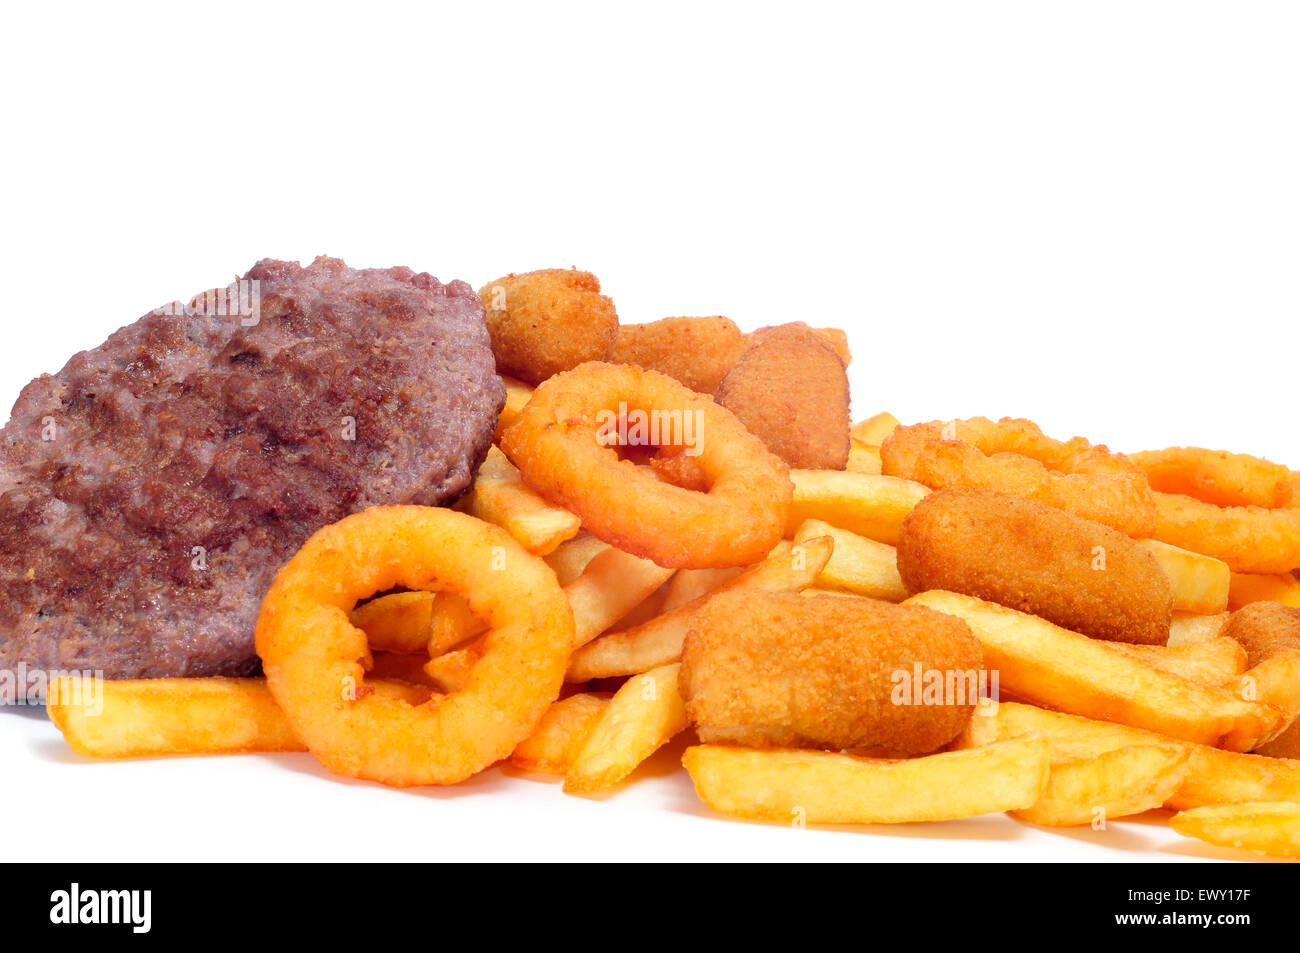 spanish fattening food: burgers, croquettes, calamares and french fries, on a white background - Stock Image